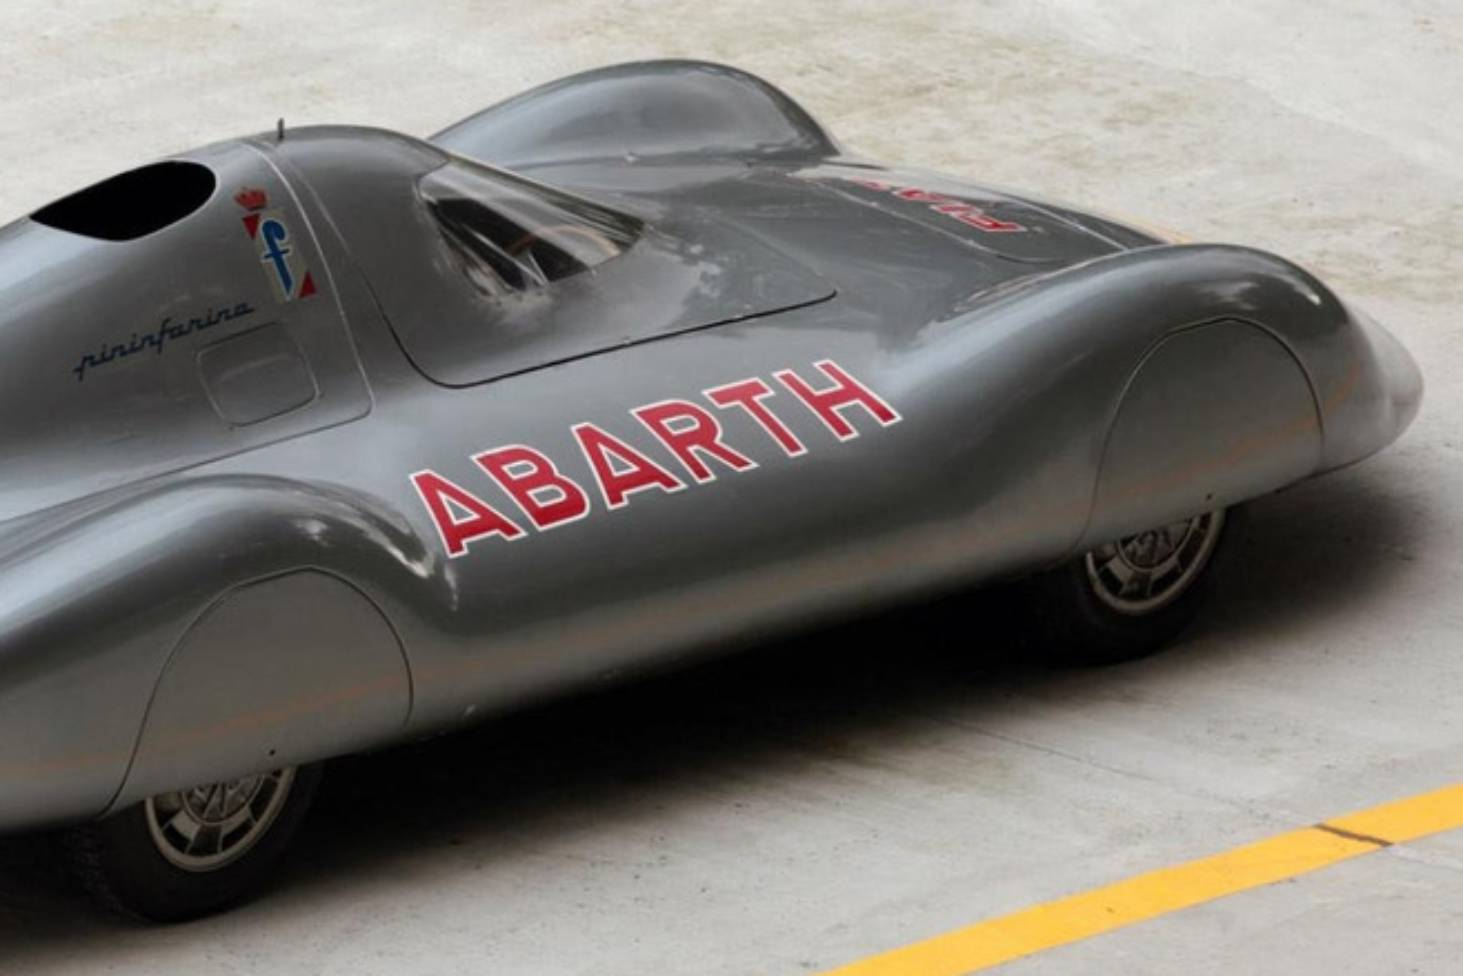 1960 Abarth Speed record car headed to auction | Stuff.co.nz